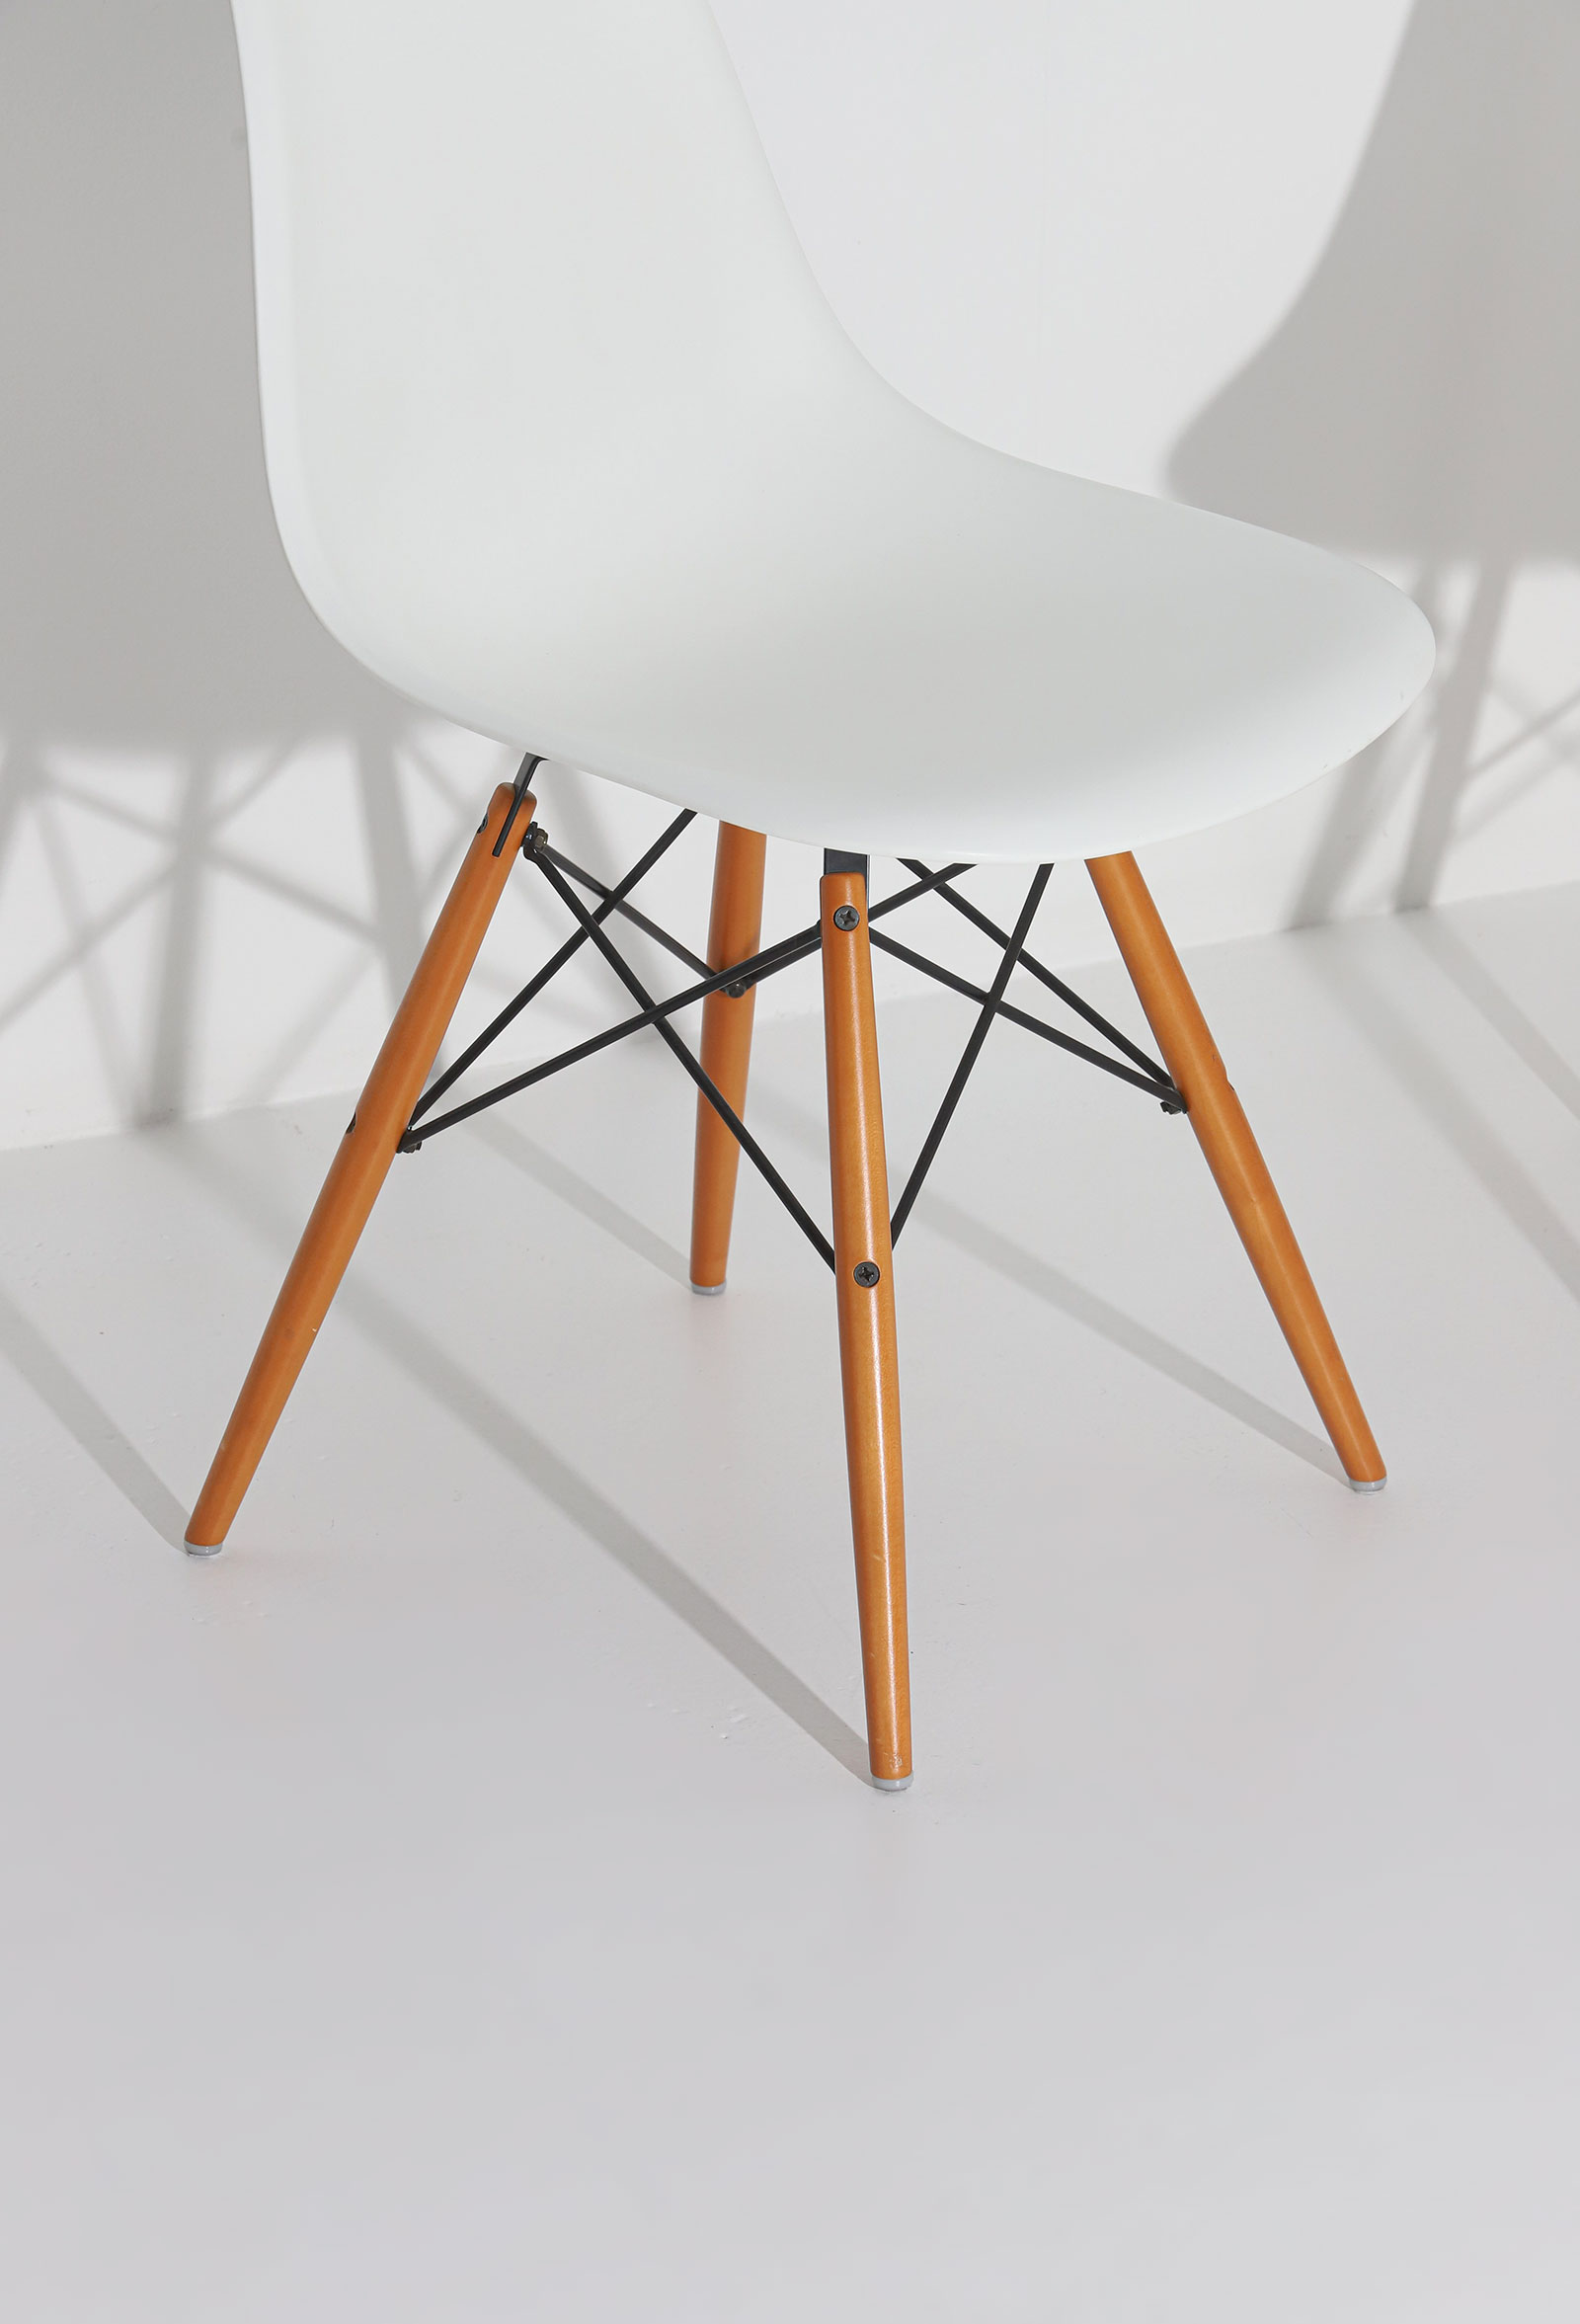 Eames DSW Vitra chairsimage 3